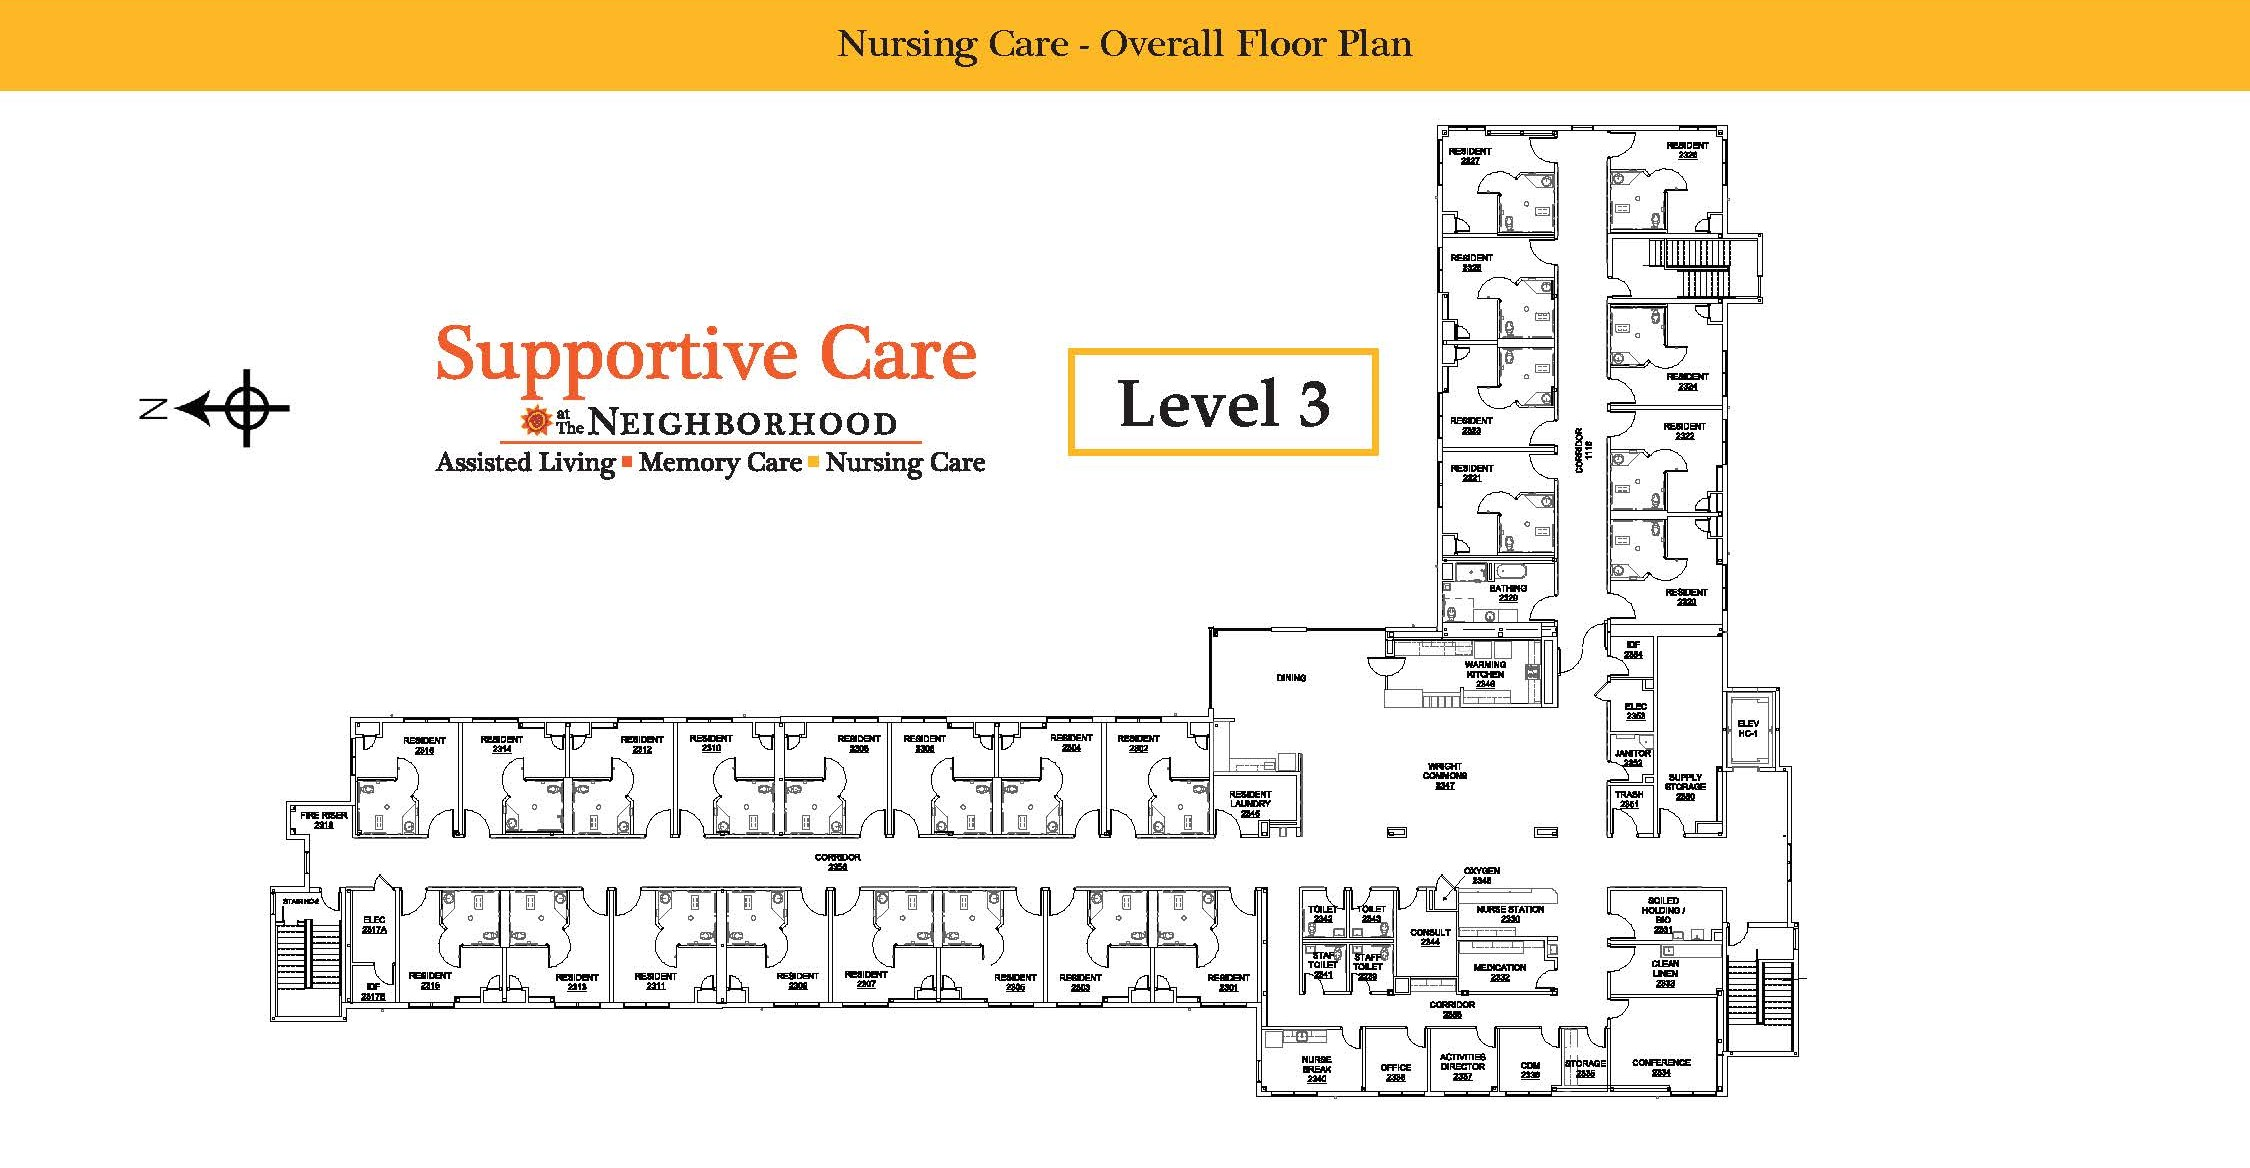 Nursing Care Level 3 Map